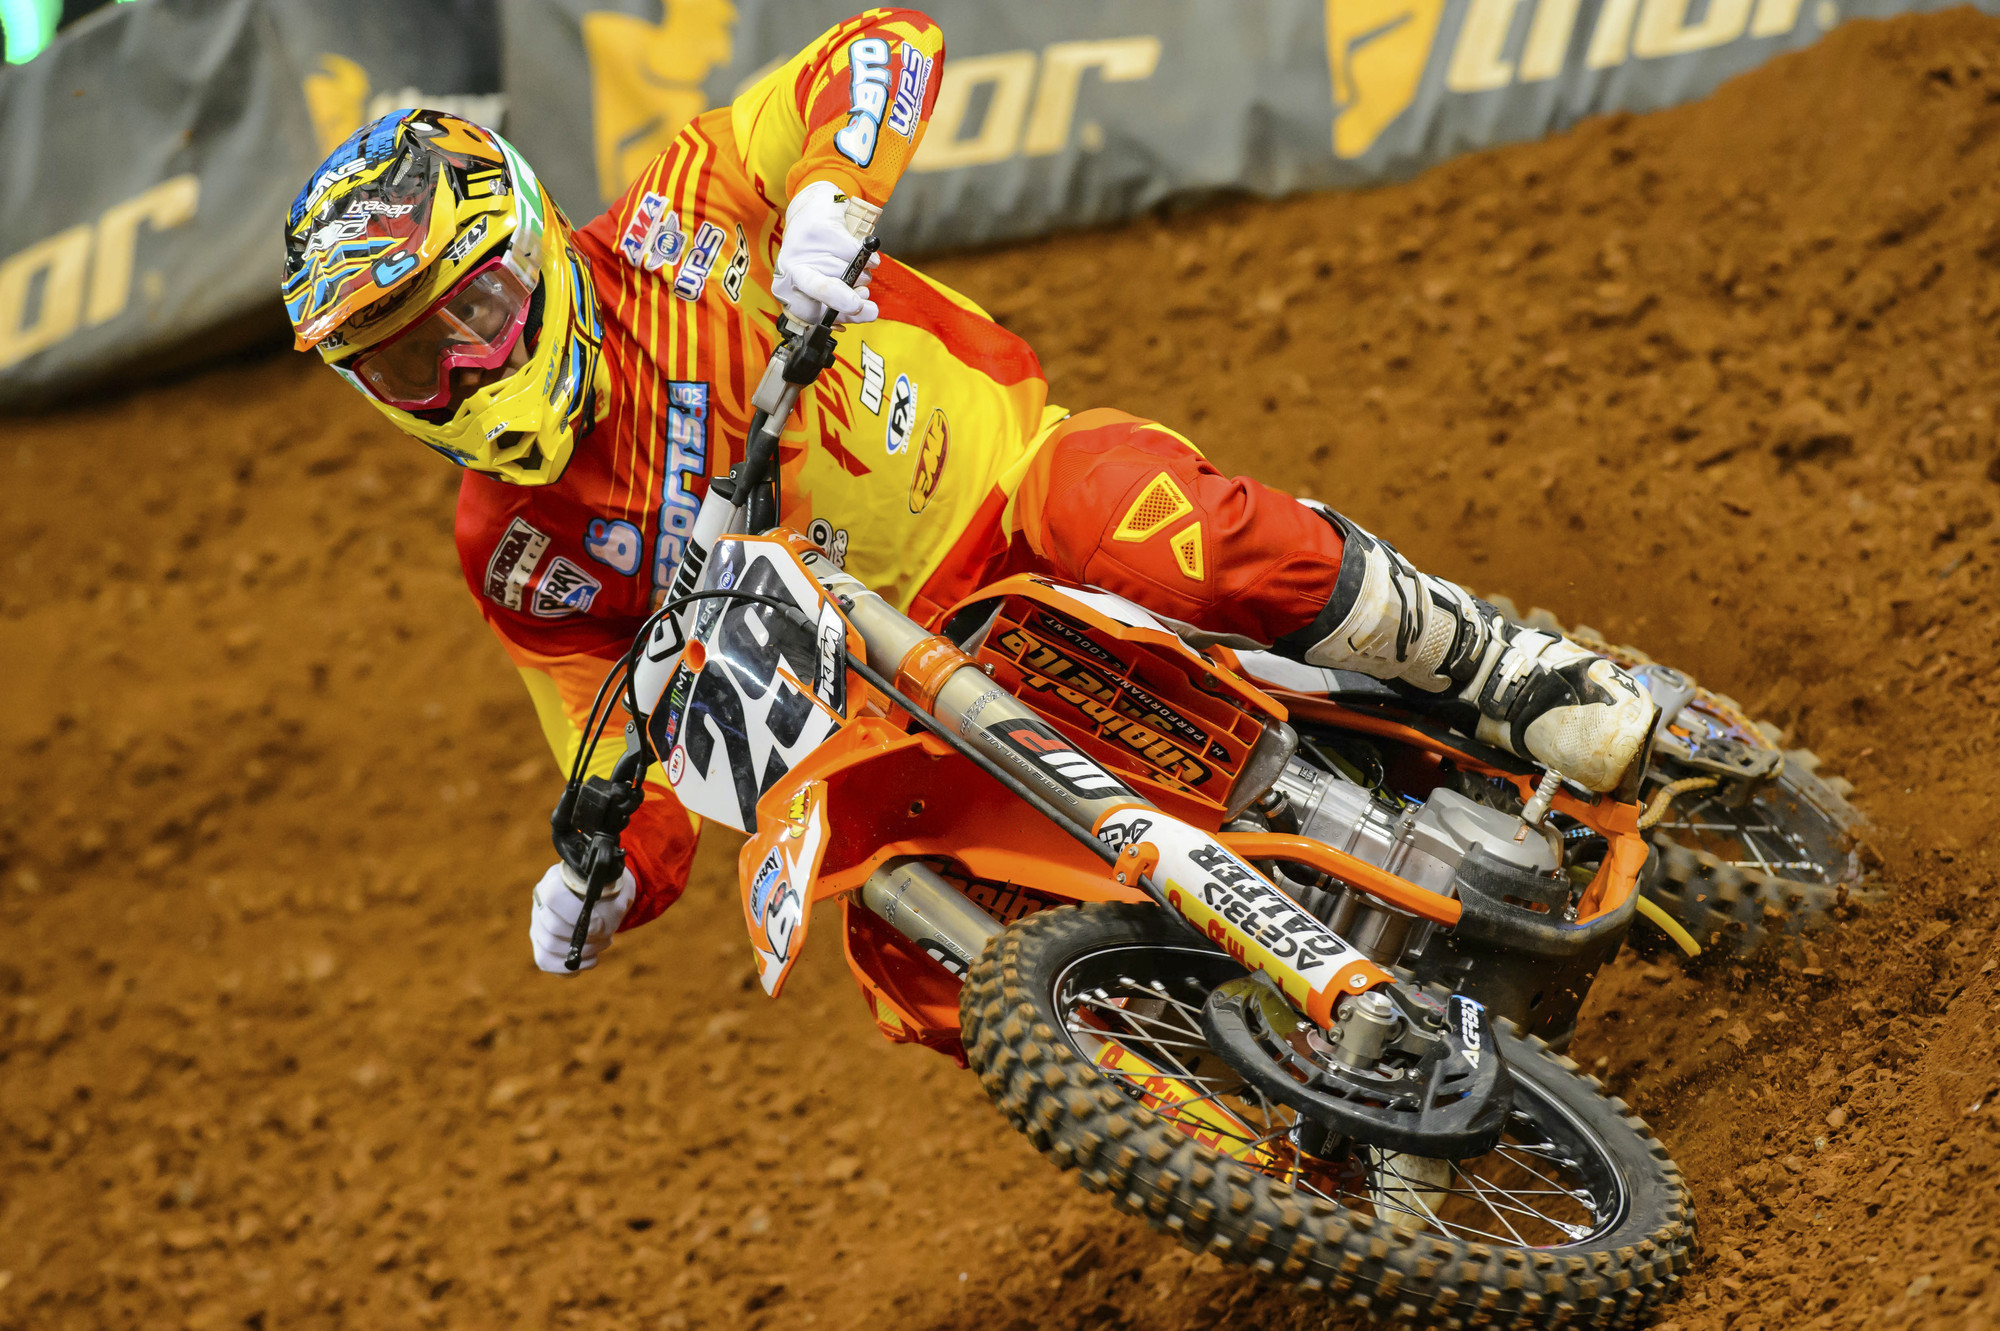 Short-AtlantaSX_News_2014_MOTOSPORTS_SCOTT Sports_EN.jpg